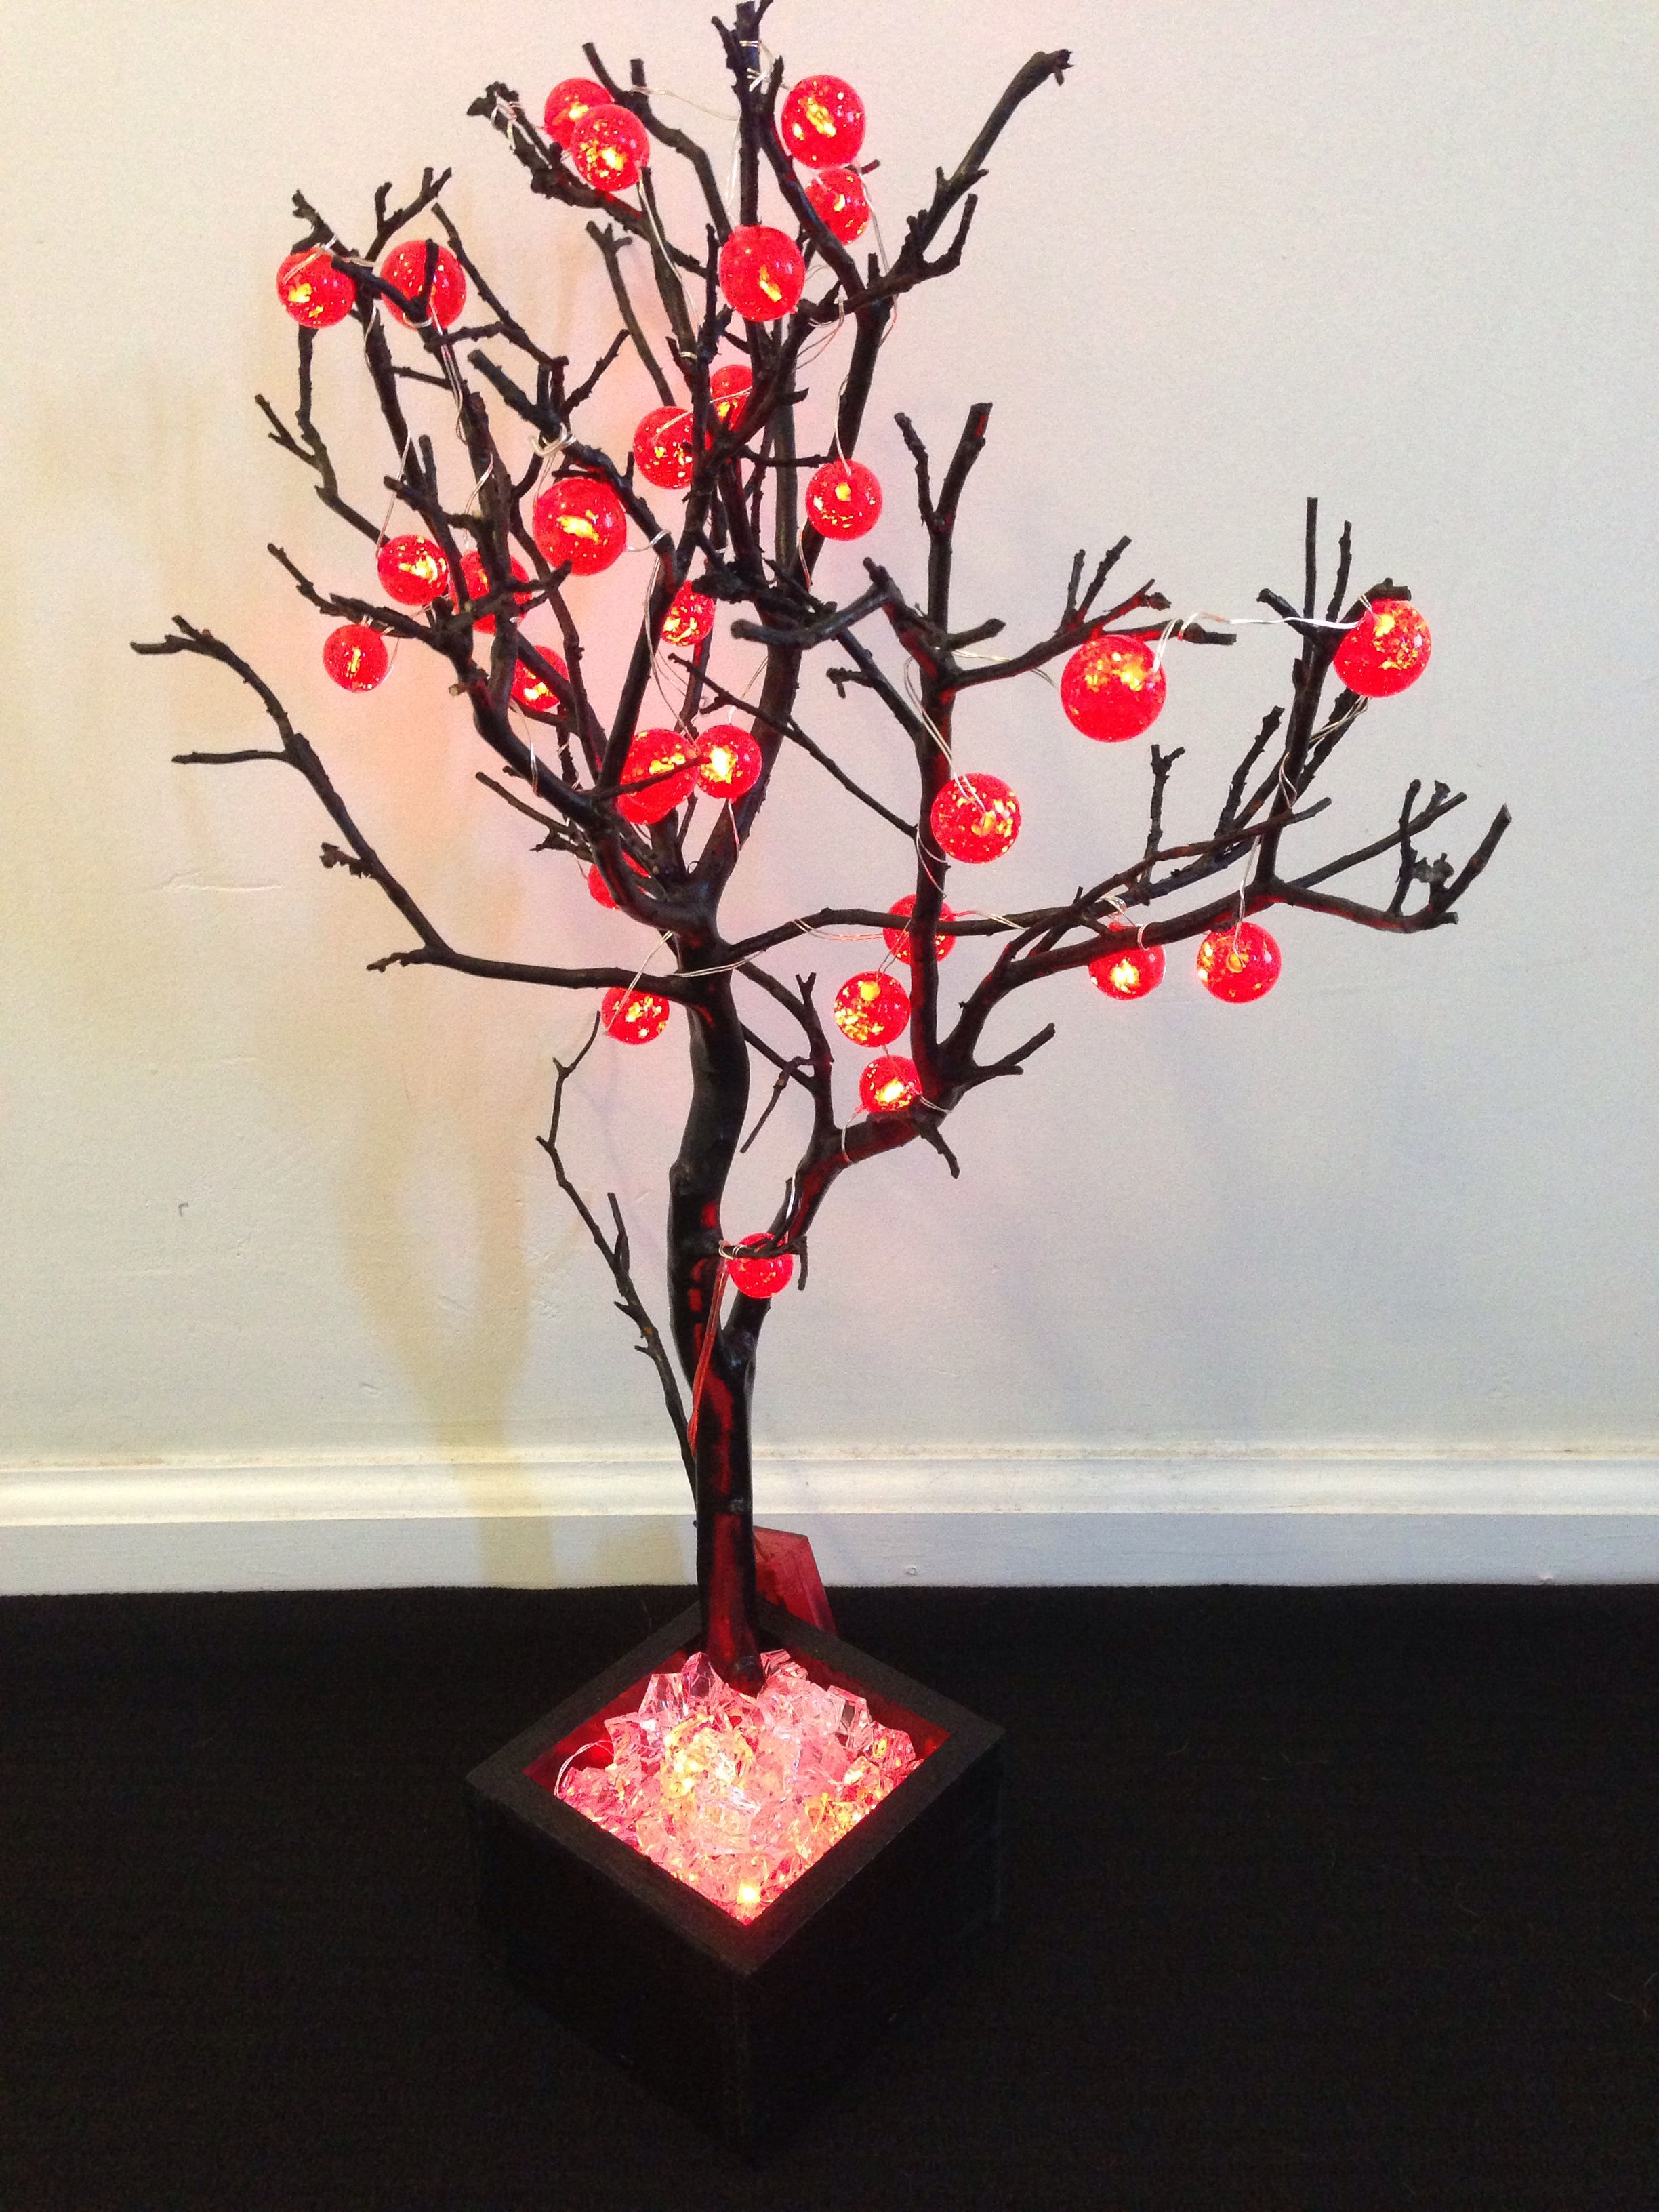 Red Fireball Dreamtree Pick A Chinese Symbol For The Side For